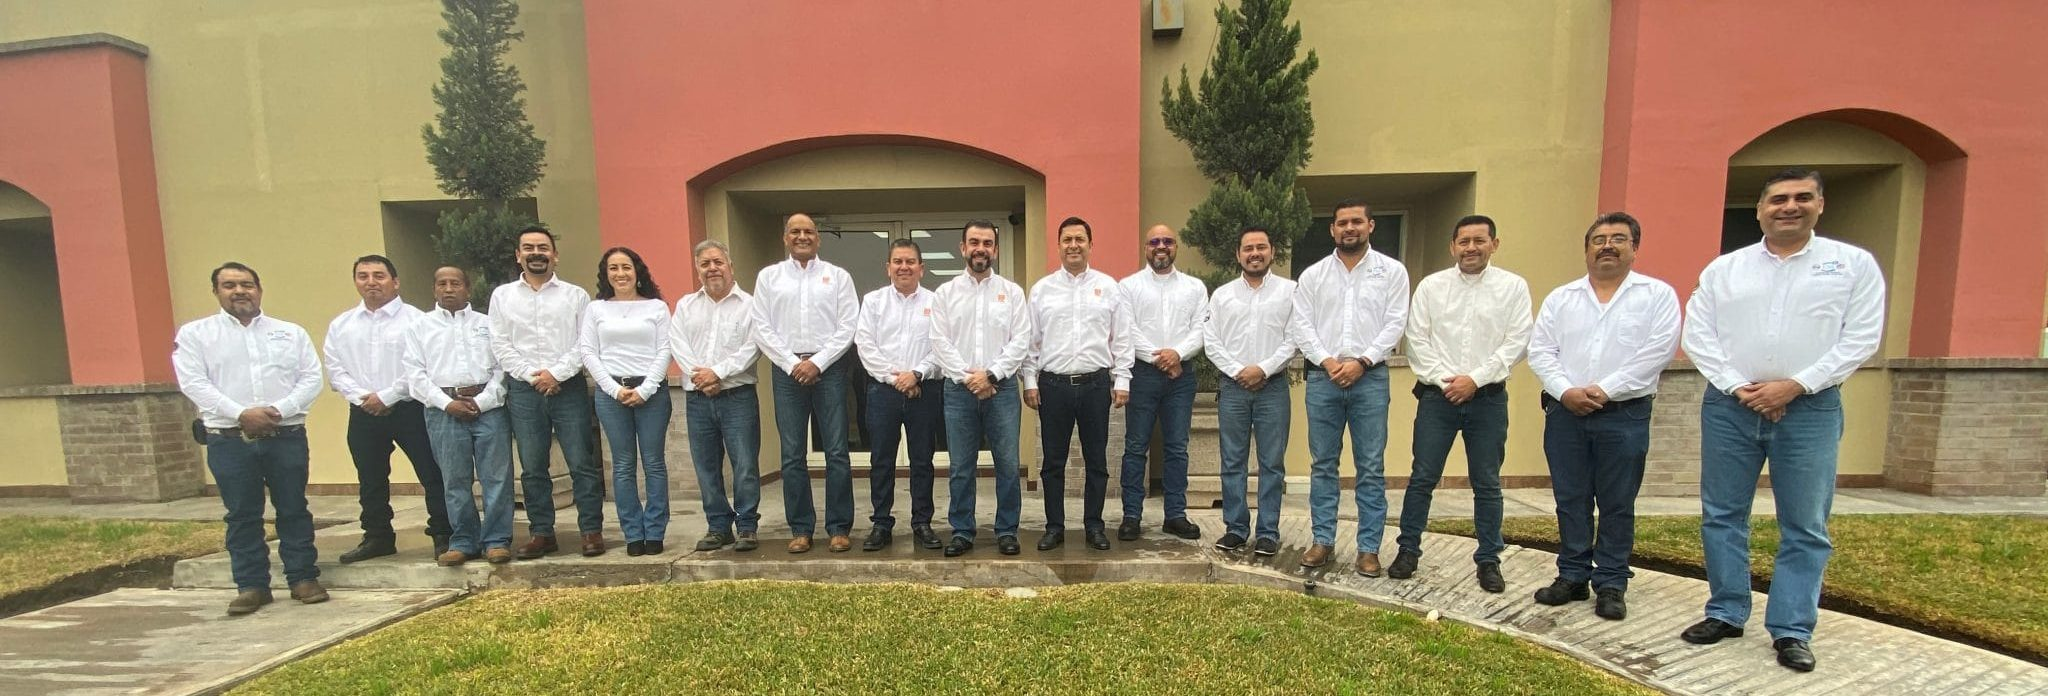 11Commercial Contracting Mexico team portrait